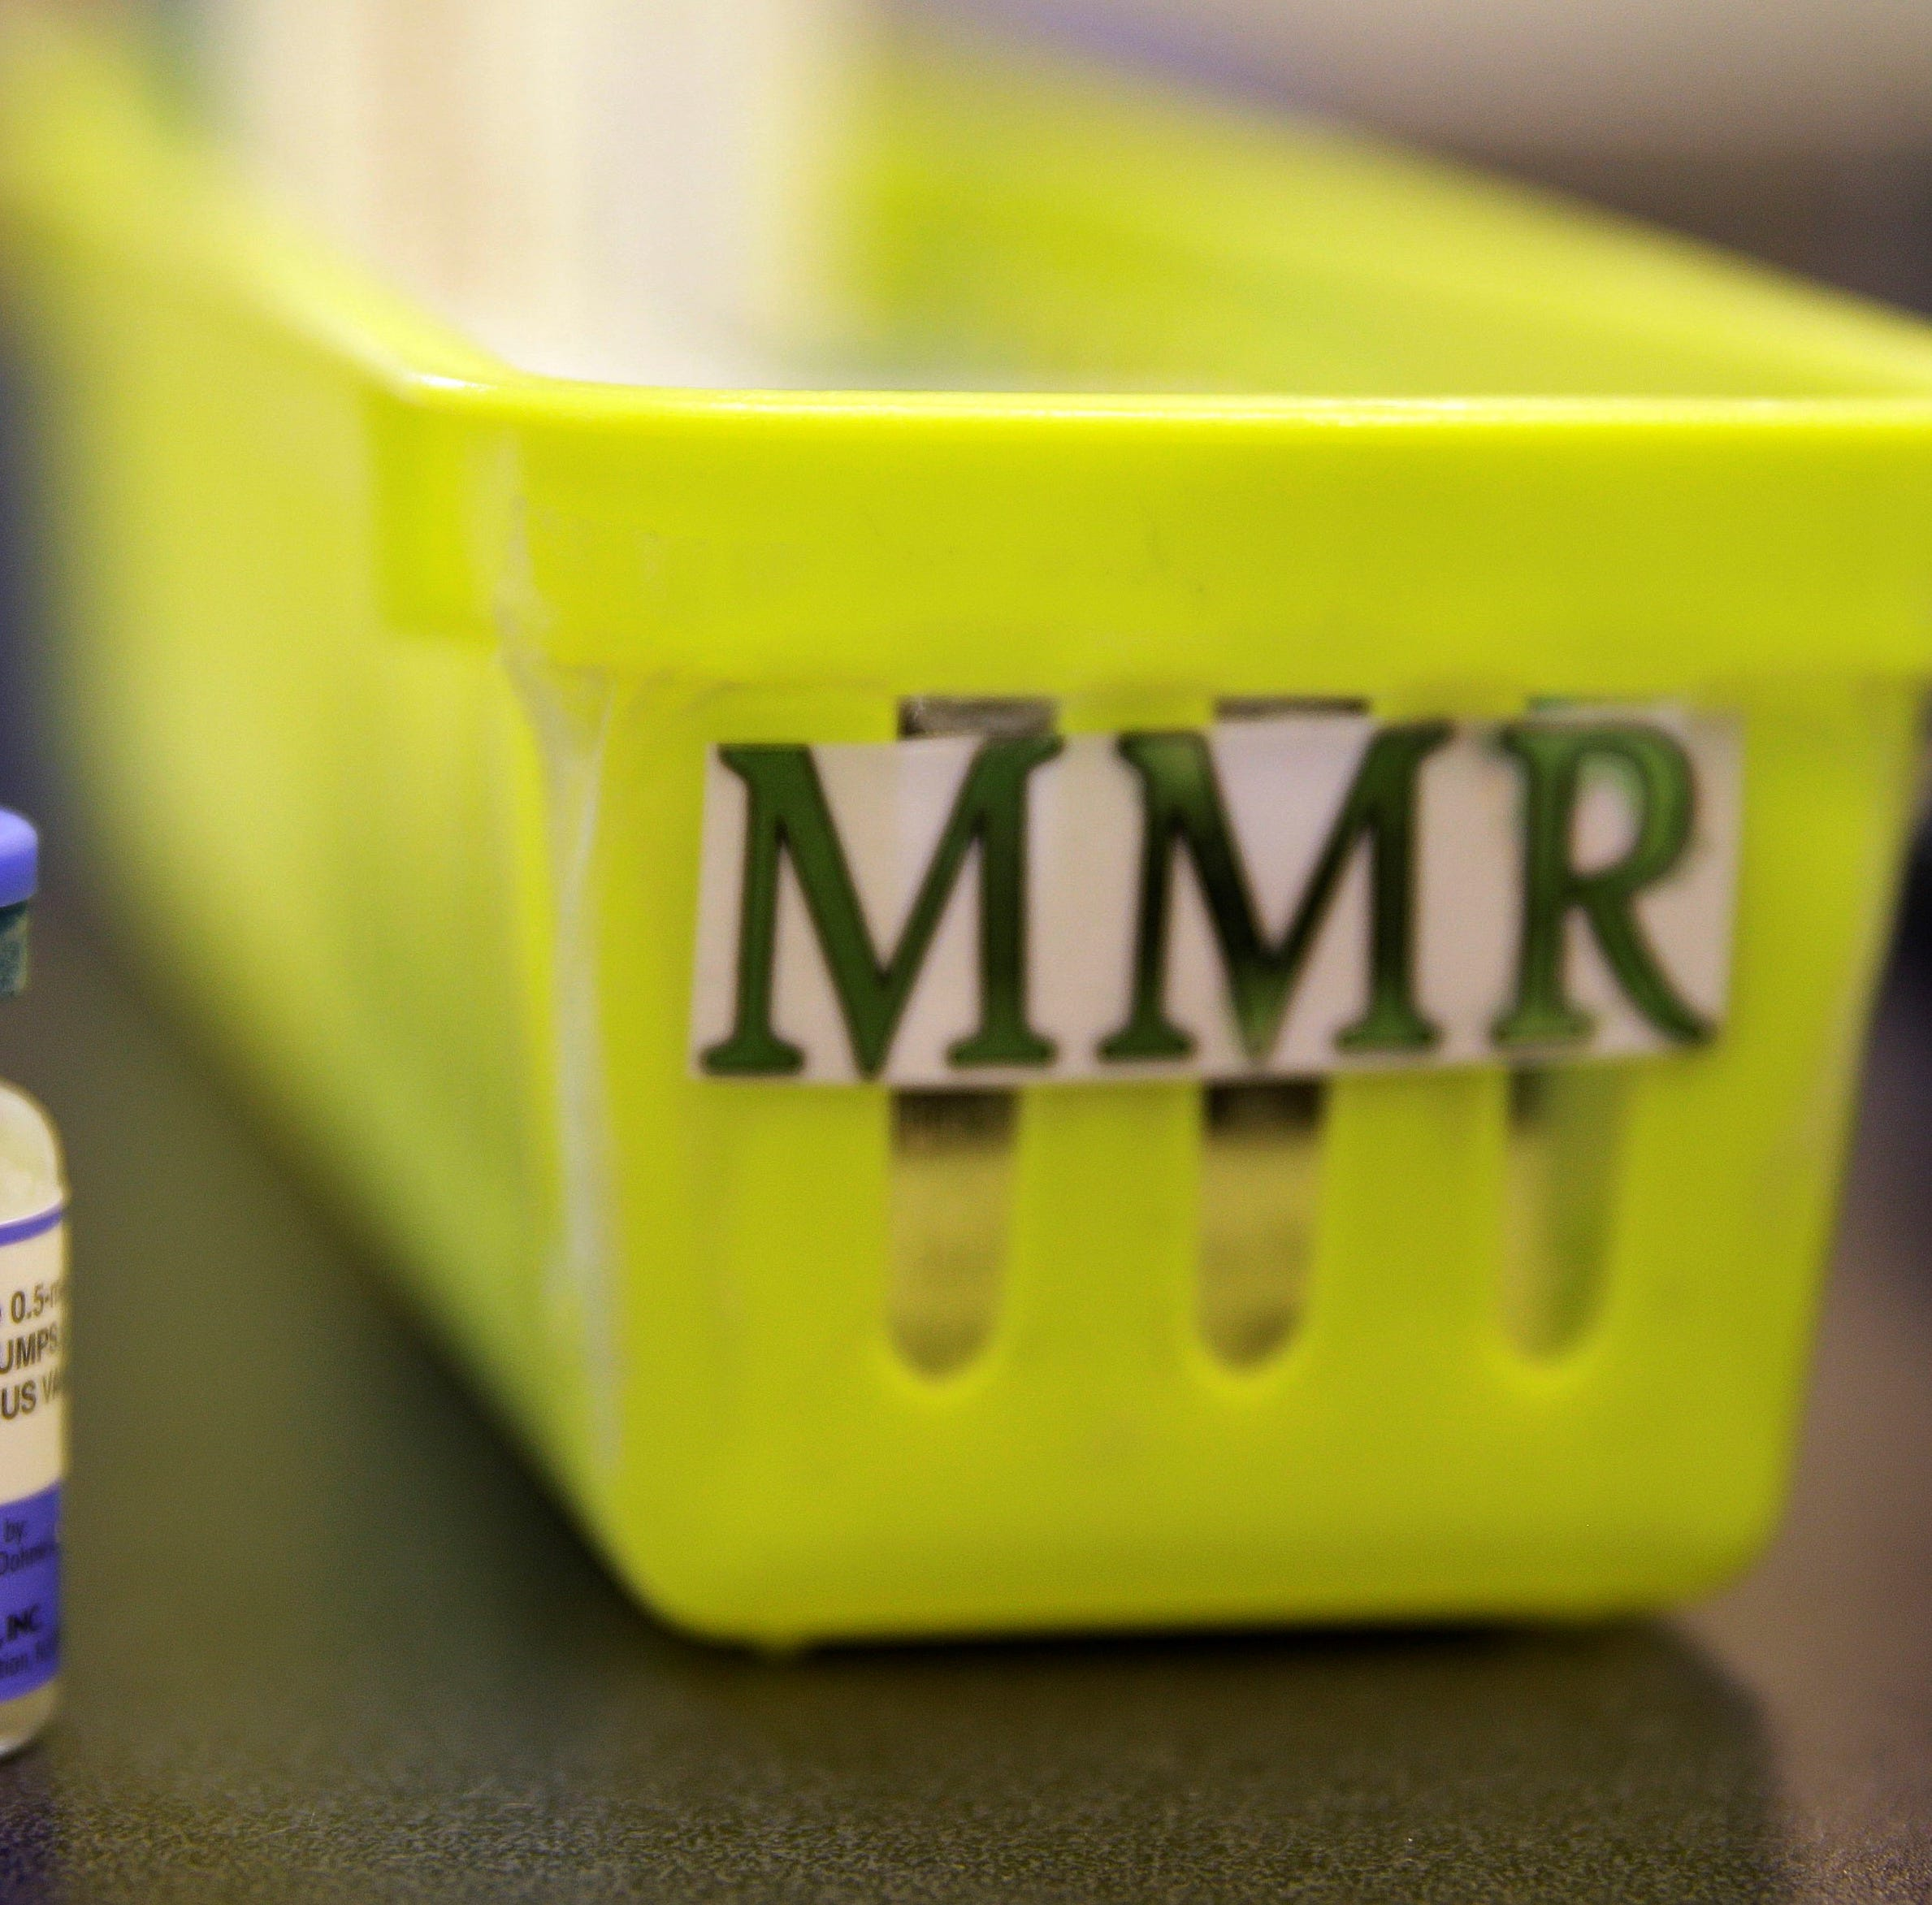 Health officials report 4 new measles cases in Washington